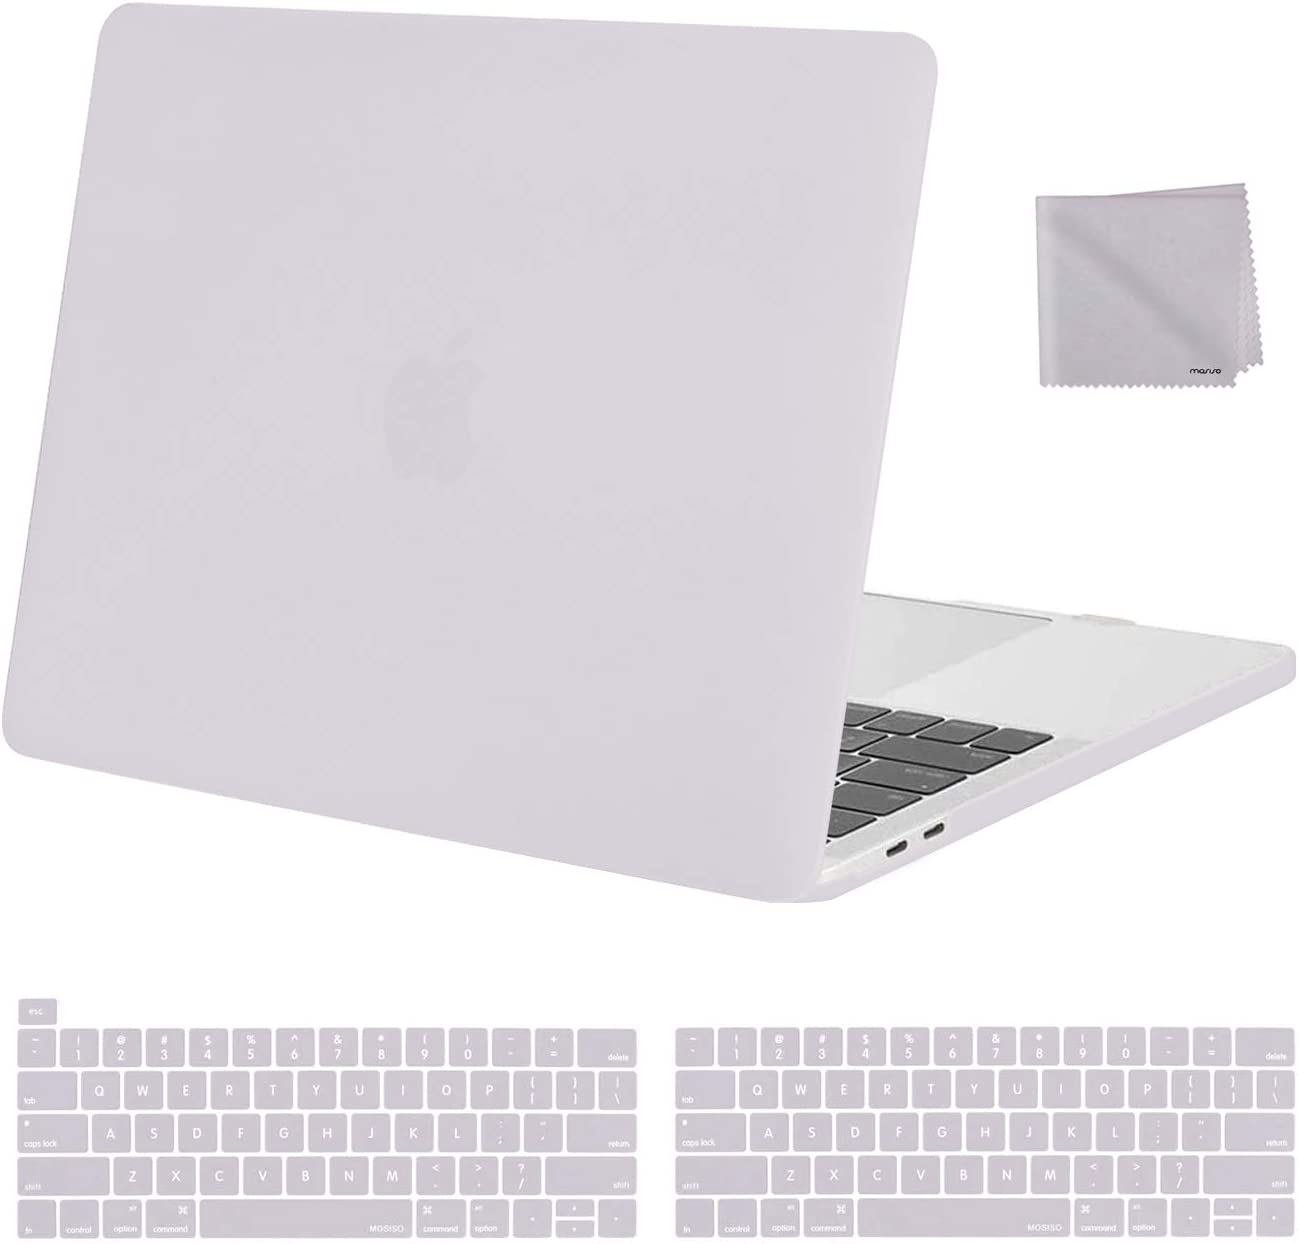 MOSISO MacBook Pro 13 inch Case 2020 2019 2018 2017 2016 Release A2289 A2251 A2159 A1989 A1706 A1708, Plastic Hard Shell&Keyboard Cover&Wipe Cloth Compatible with MacBook Pro 13 inch, Rock Gray